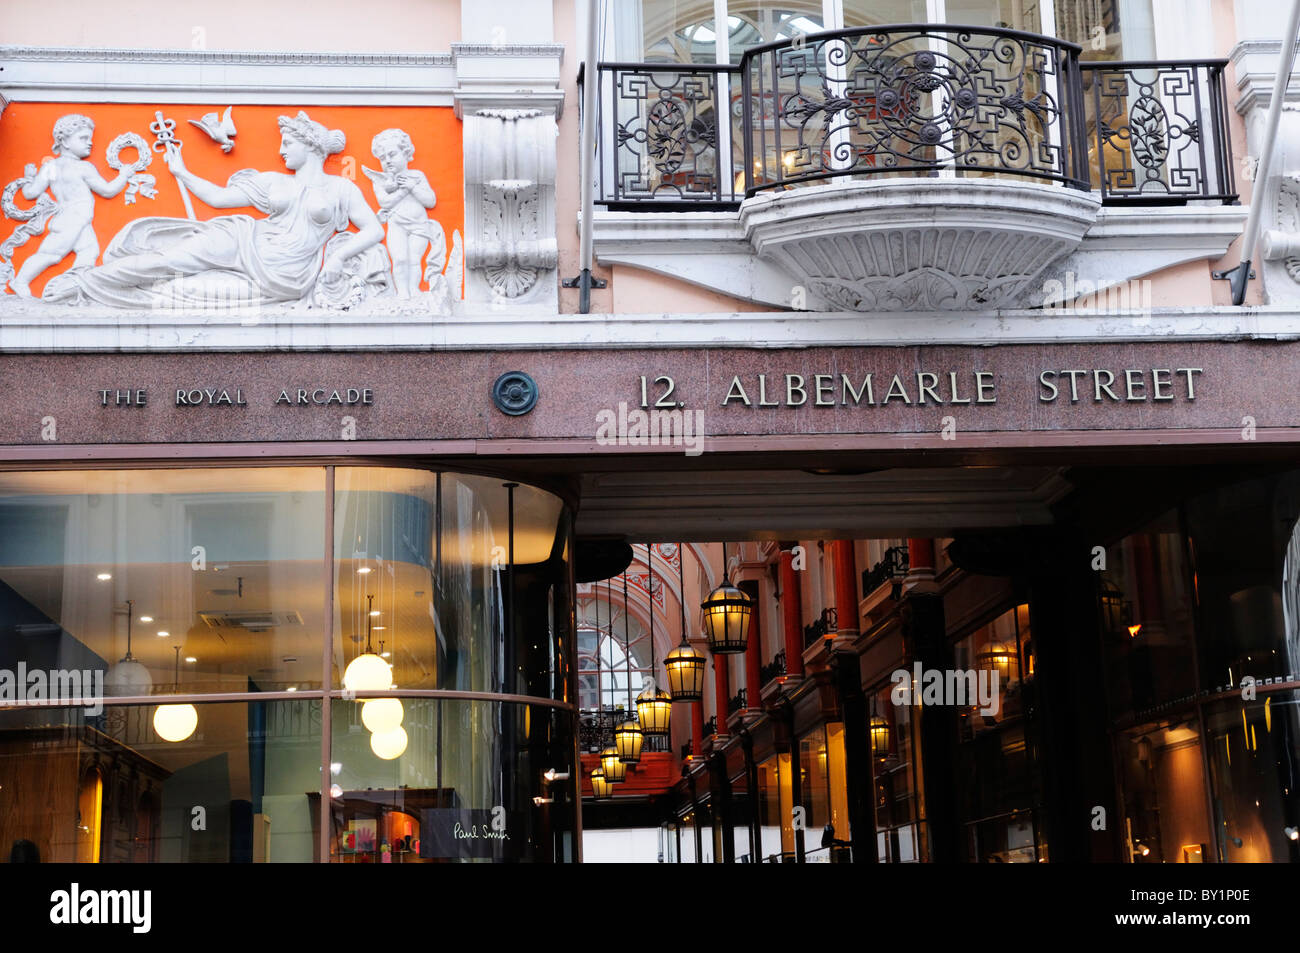 The Royal Arcade, Albemarle Street, Mayfair, London, England, UK - Stock Image